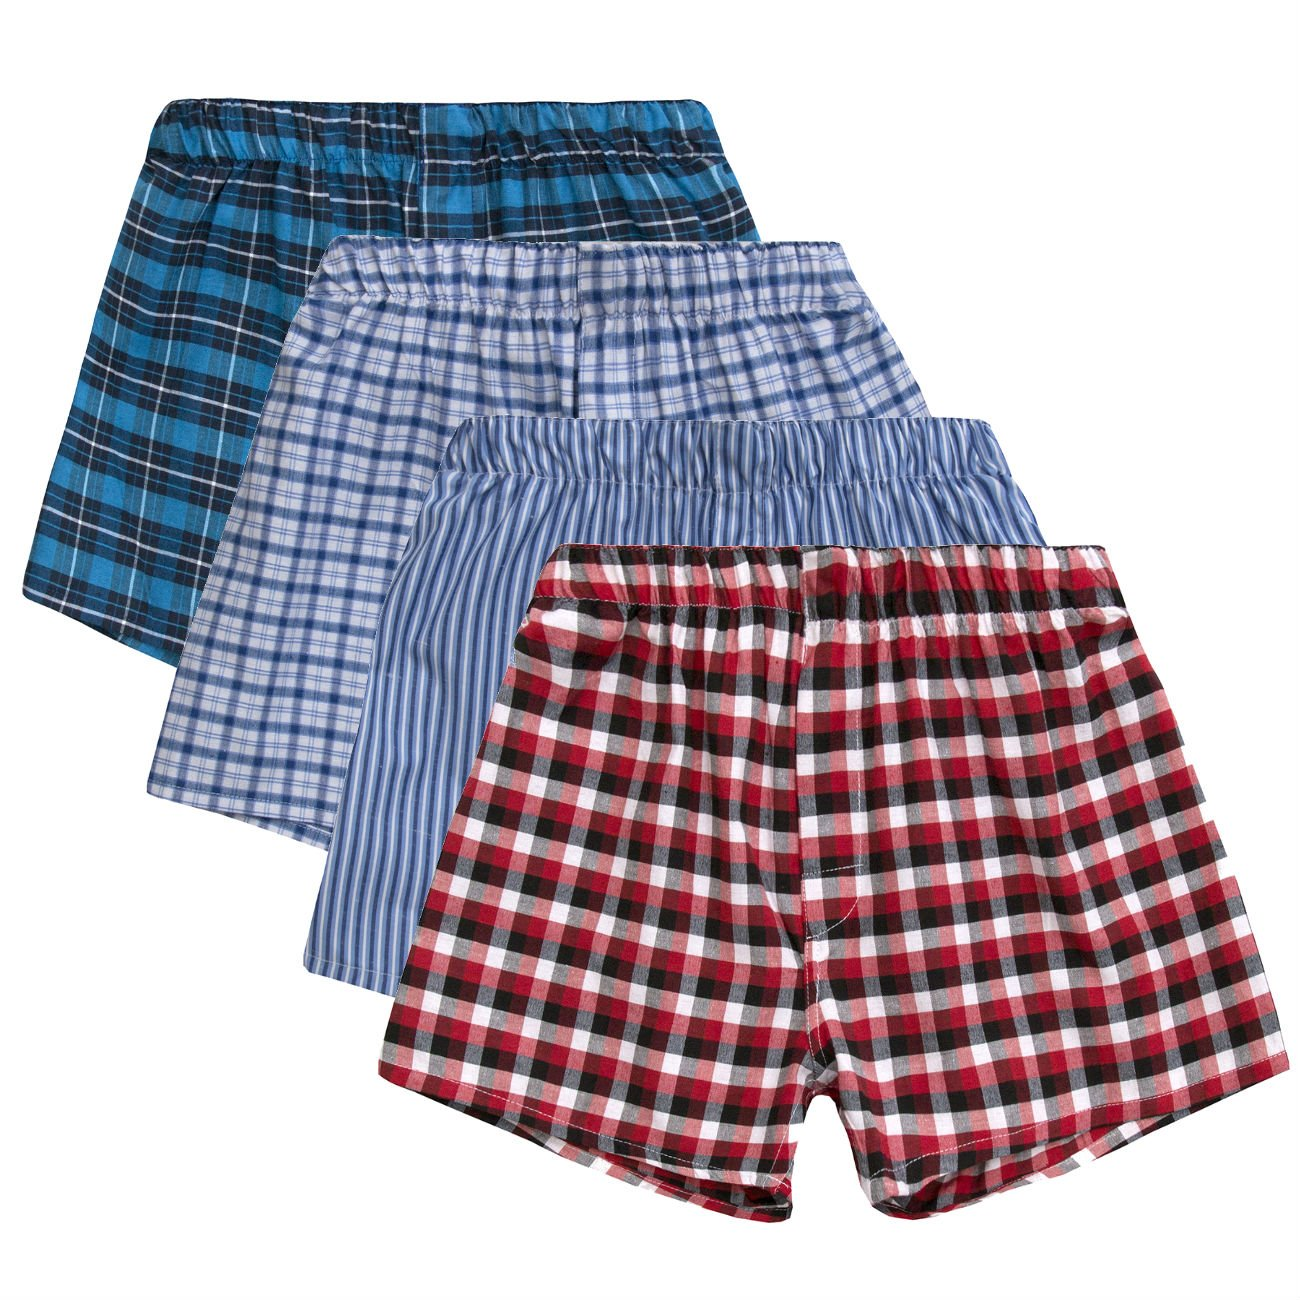 4KIDZ Boys Boxers Shorts | Cotton Rich Underwear | 4 Pair & 8 Pair Multipack - Ages 7 up To 13 Years